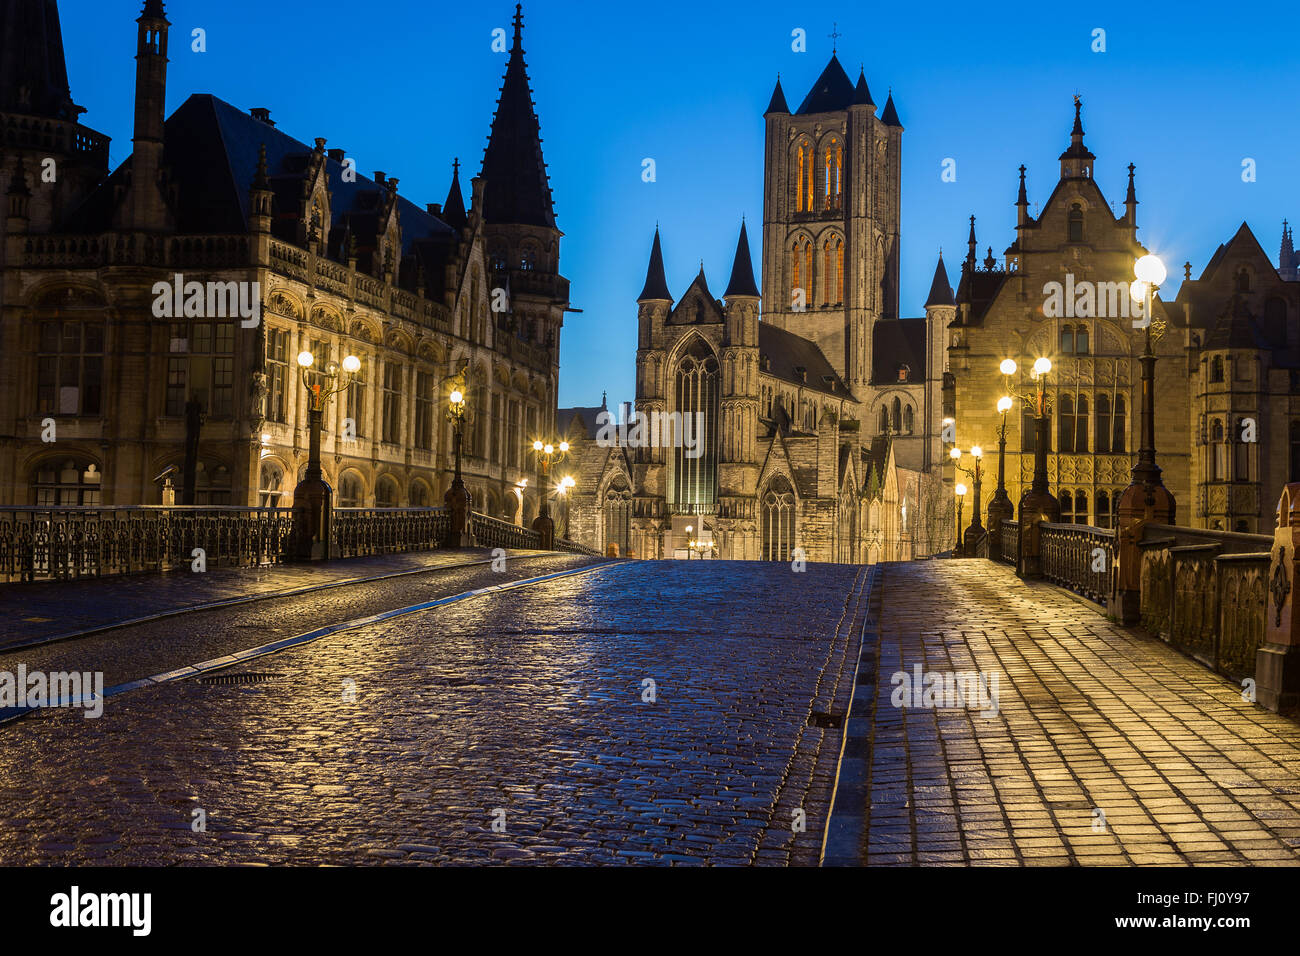 A view towards Saint Nicholas' Church in Ghent City Center at dusk in the morning. A cobbled road can be seen - Stock Image